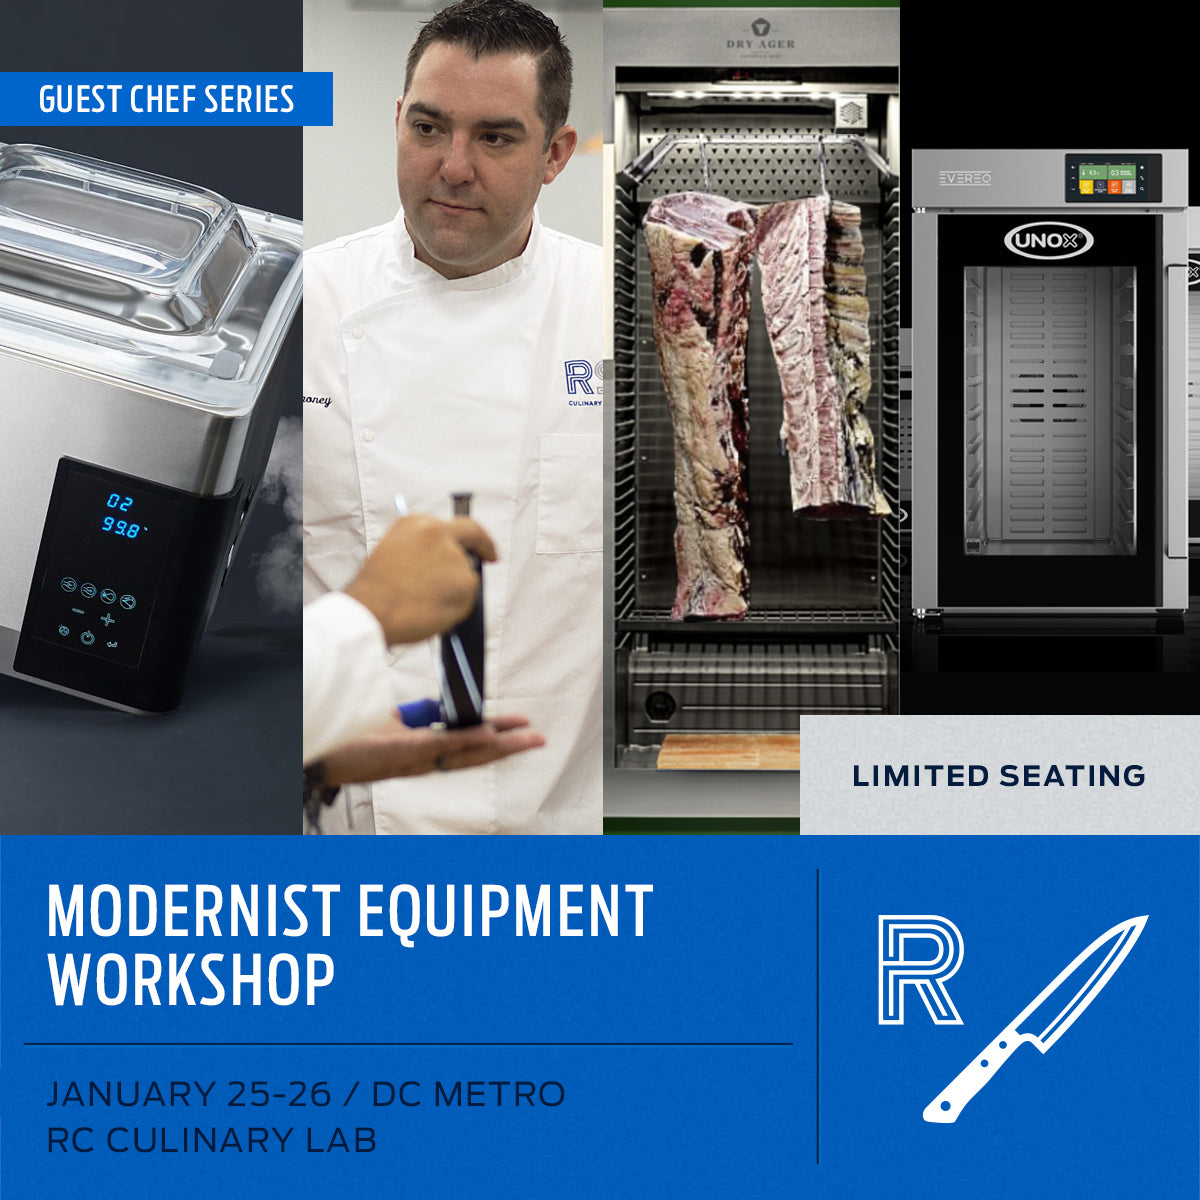 Modern Equipment, January 25th-26th, 2021 - RC Culinary Lab, DC Metro